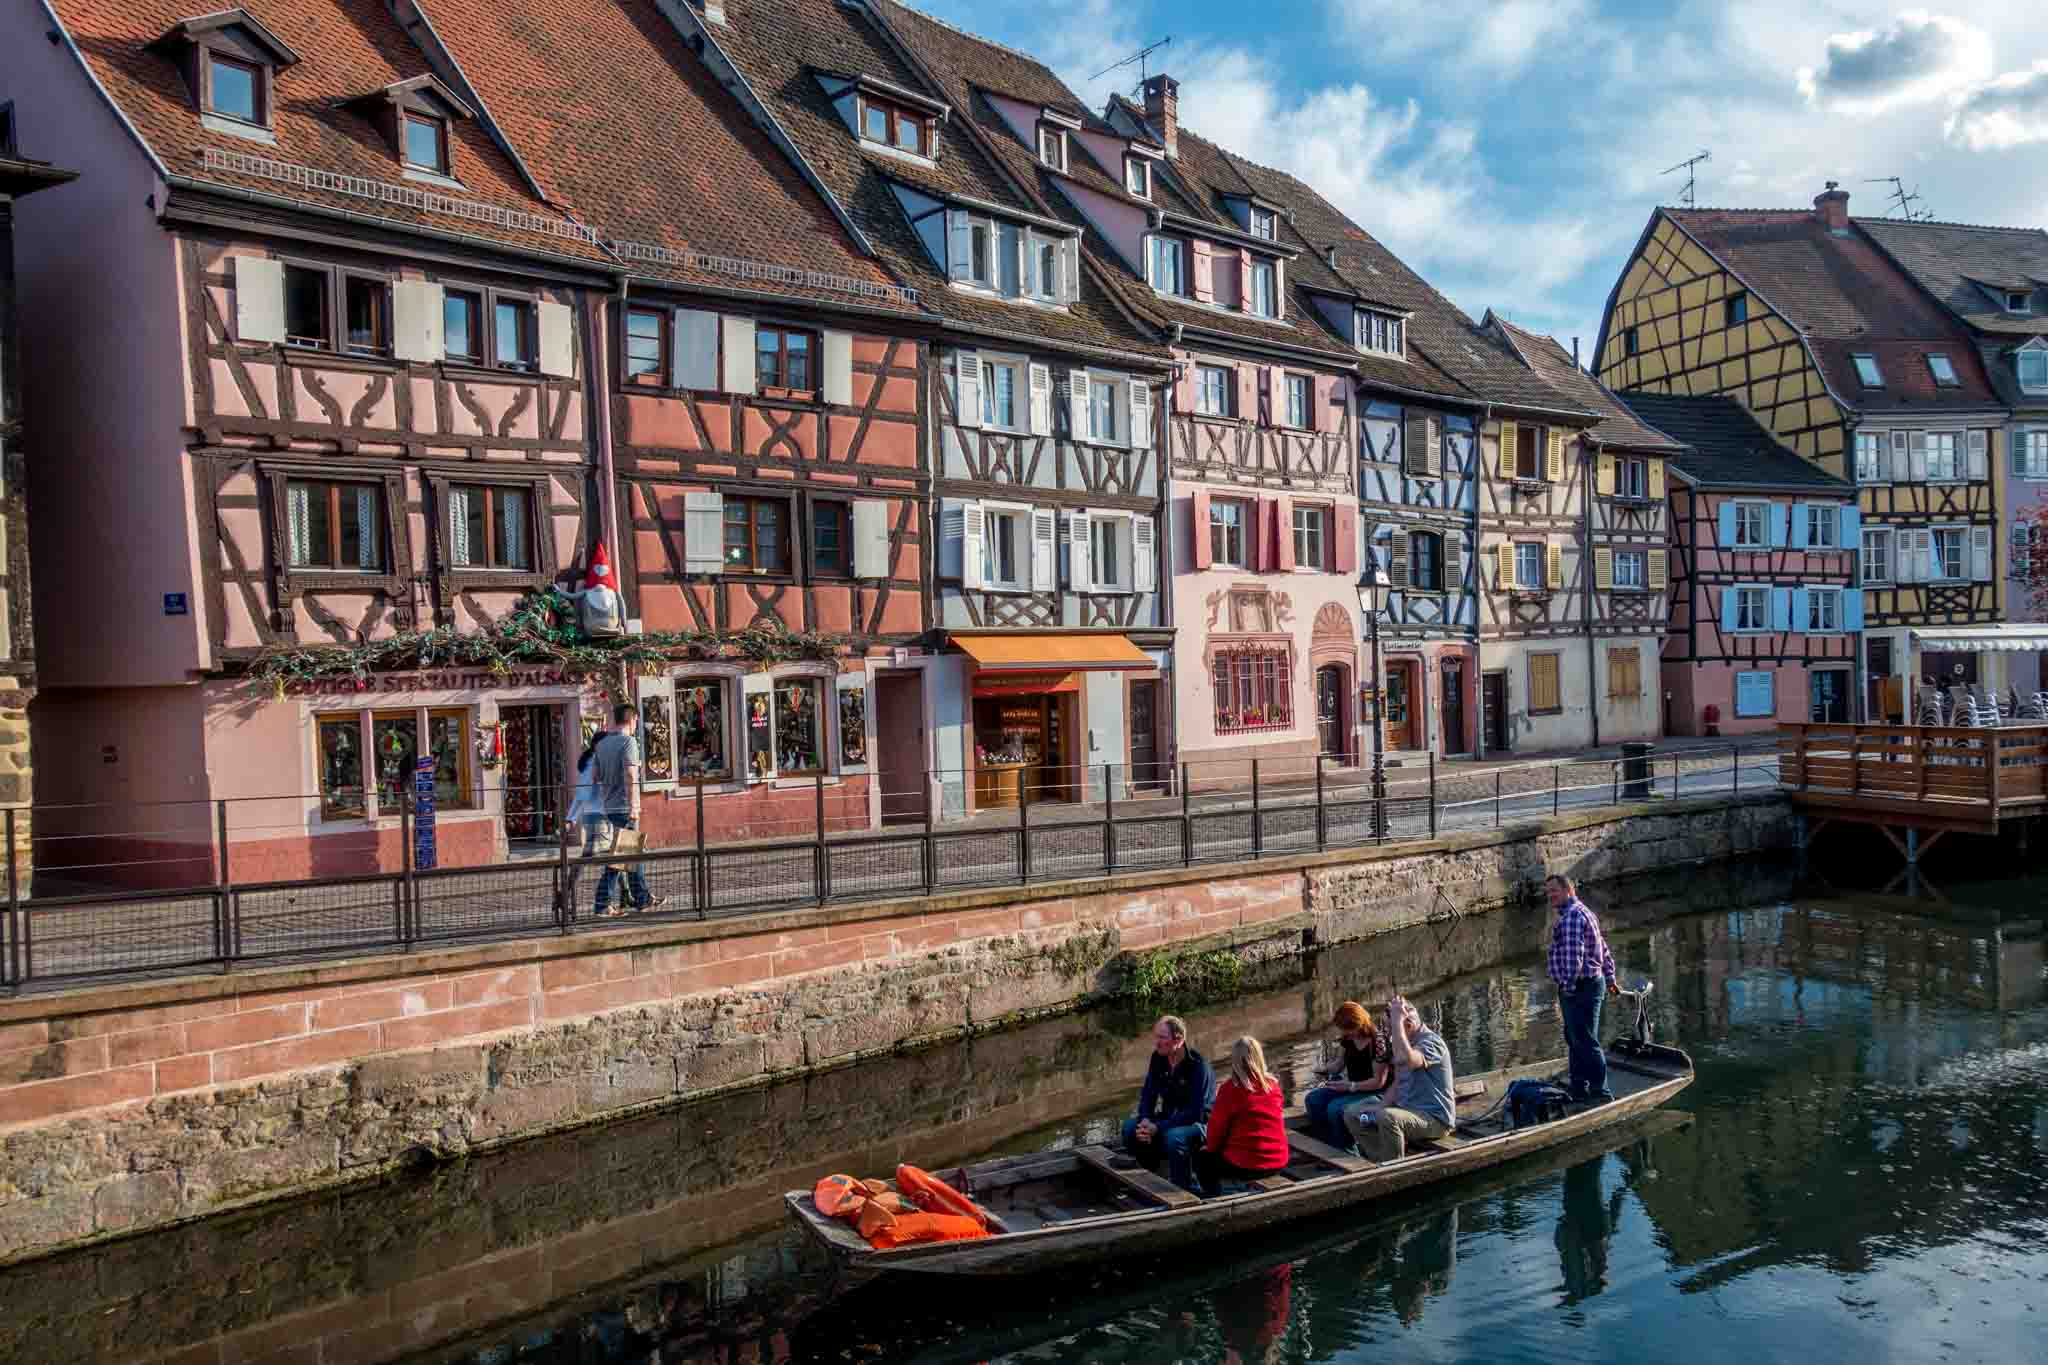 Boat in the river in front of a row of half-timbered buildings in Colmar